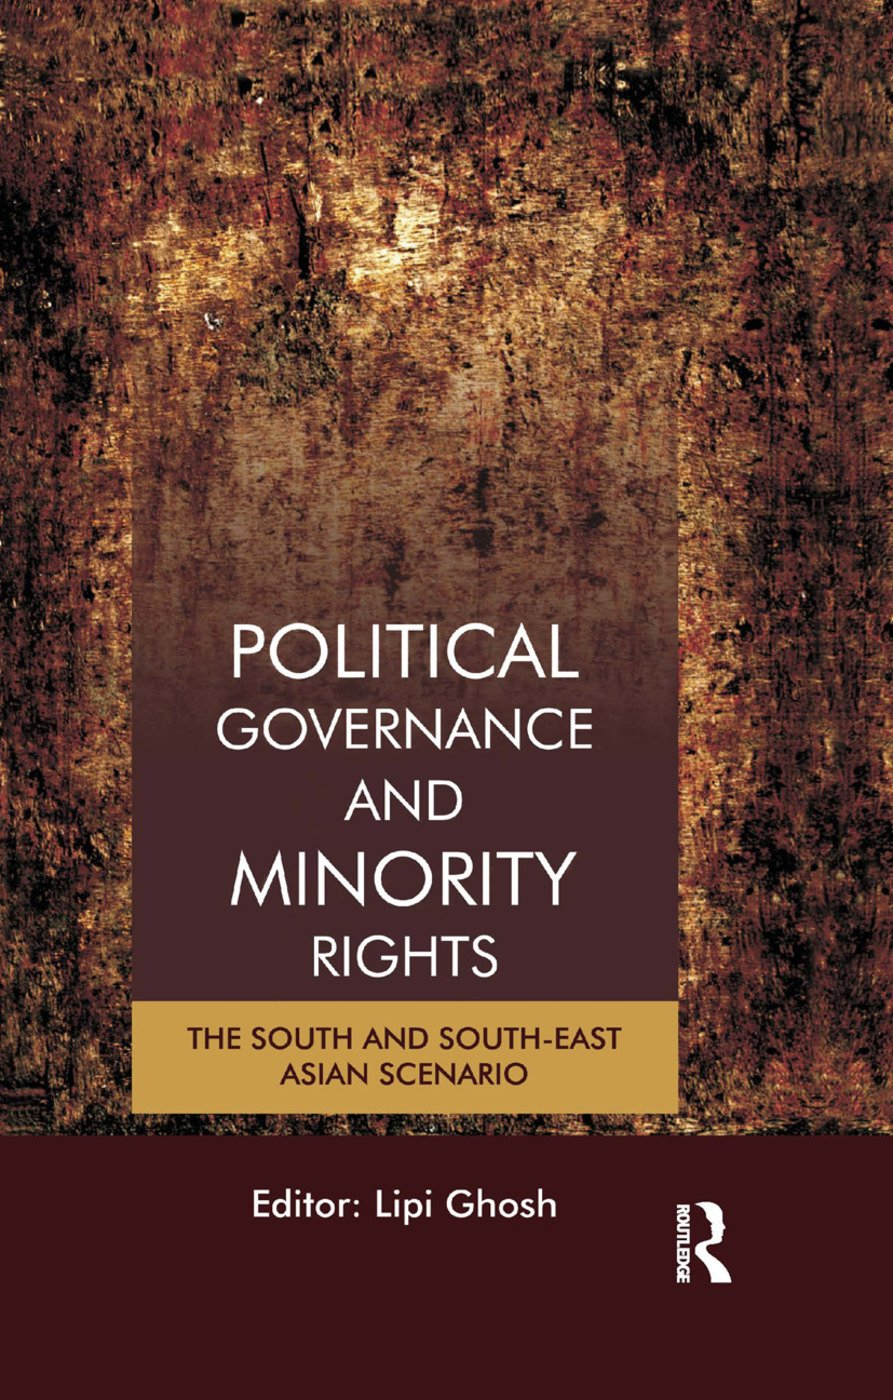 Political Governance and Minority Rights: The South and South-East Asian Scenario book cover